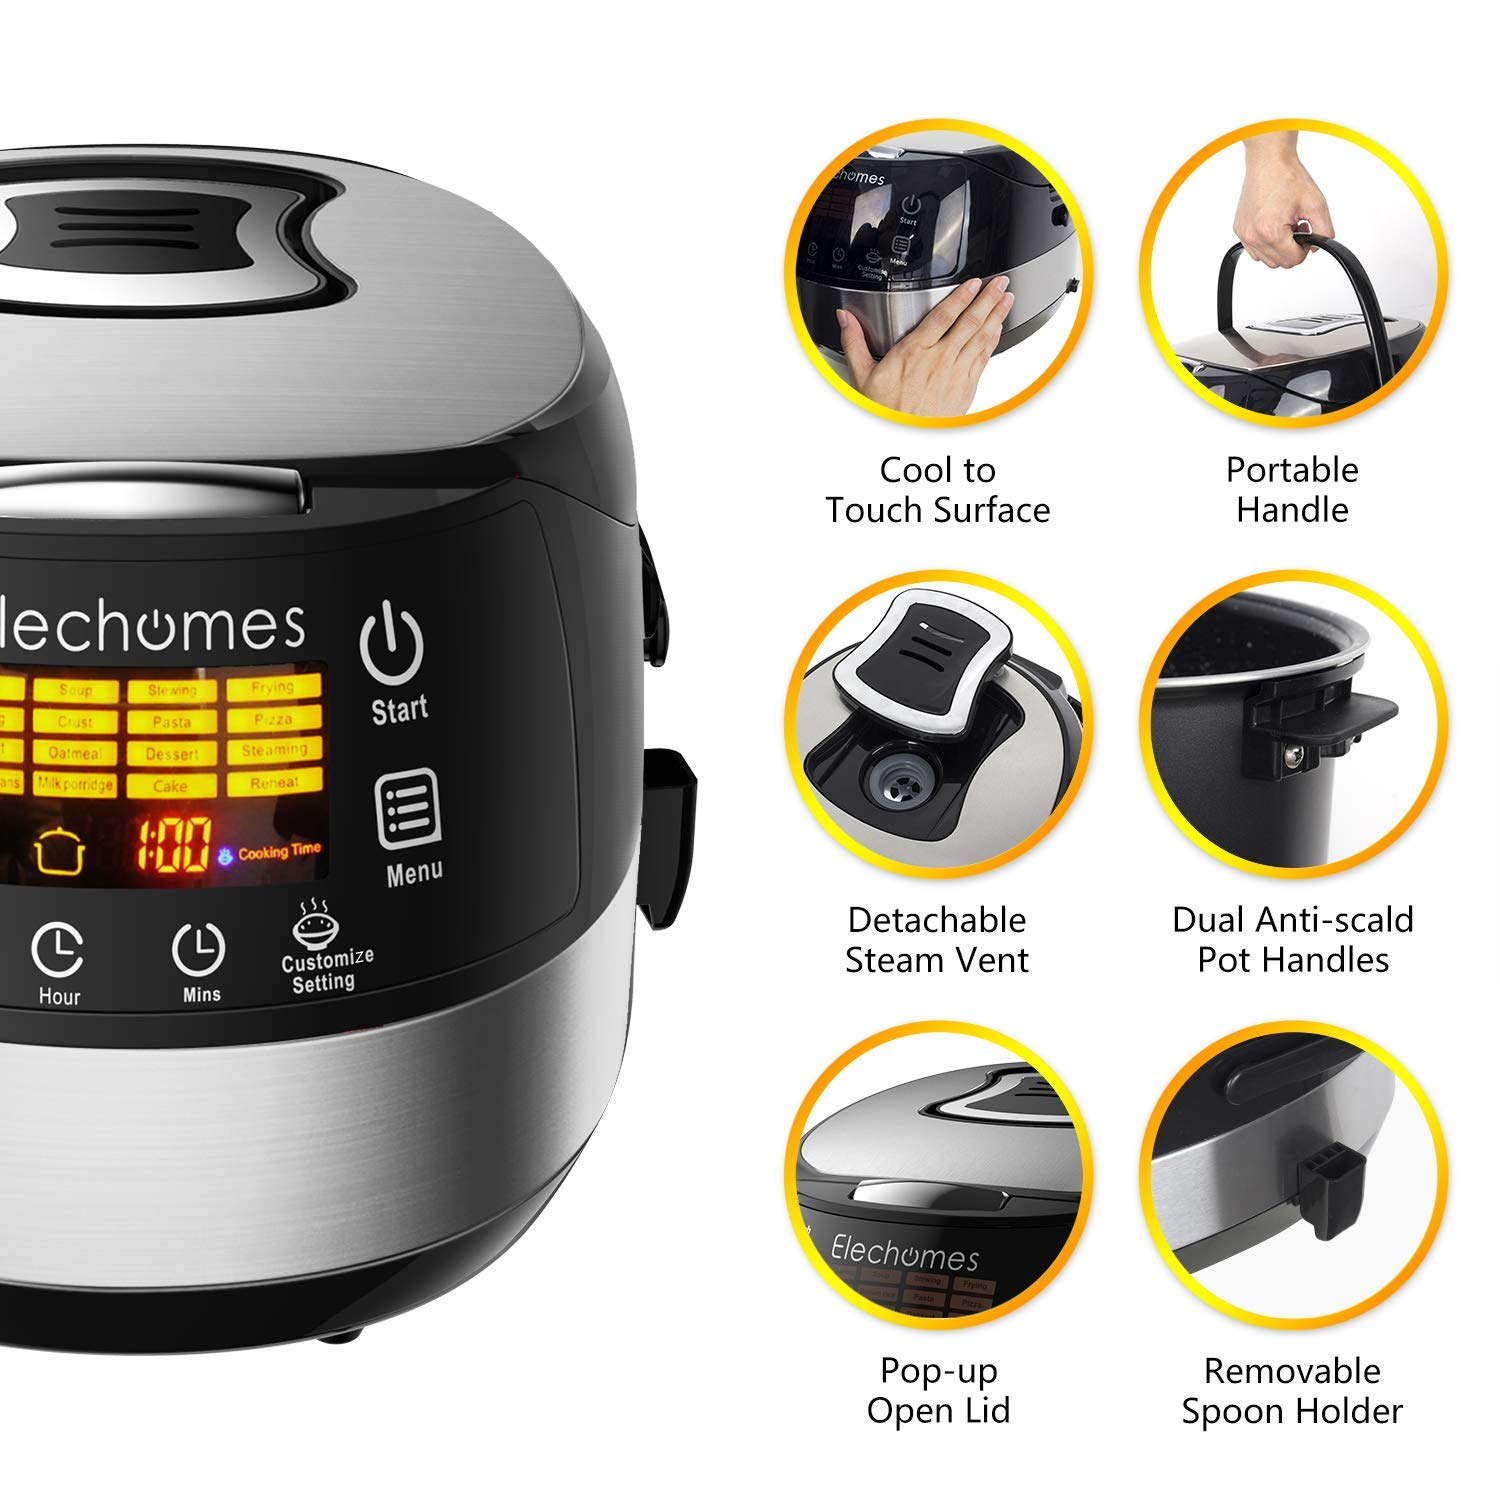 Elechomes LED Touch Control Rice Cooker, 16-in-1 Multi-function Cooker, 10-Cups Uncooked Warmer Cooker with Steam & Rinse Basket, CR502 by Elechomes (Image #2)